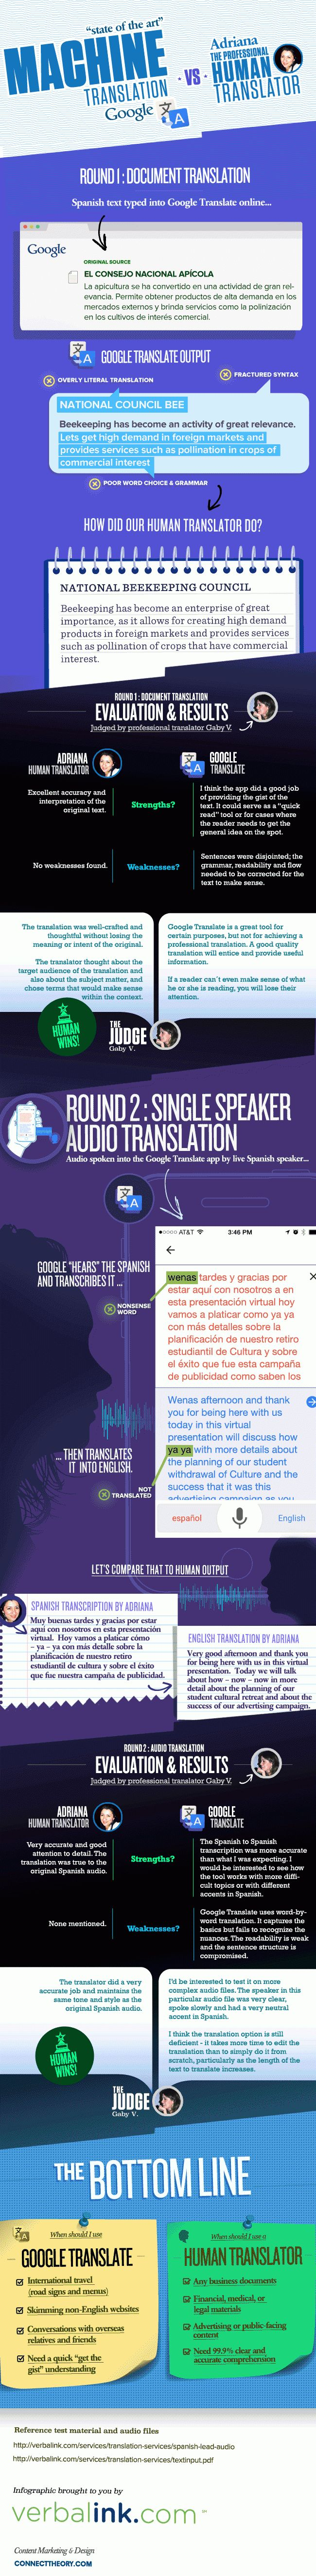 #Human Vs #Machine Translation: Who Wins? Find out! #infographic